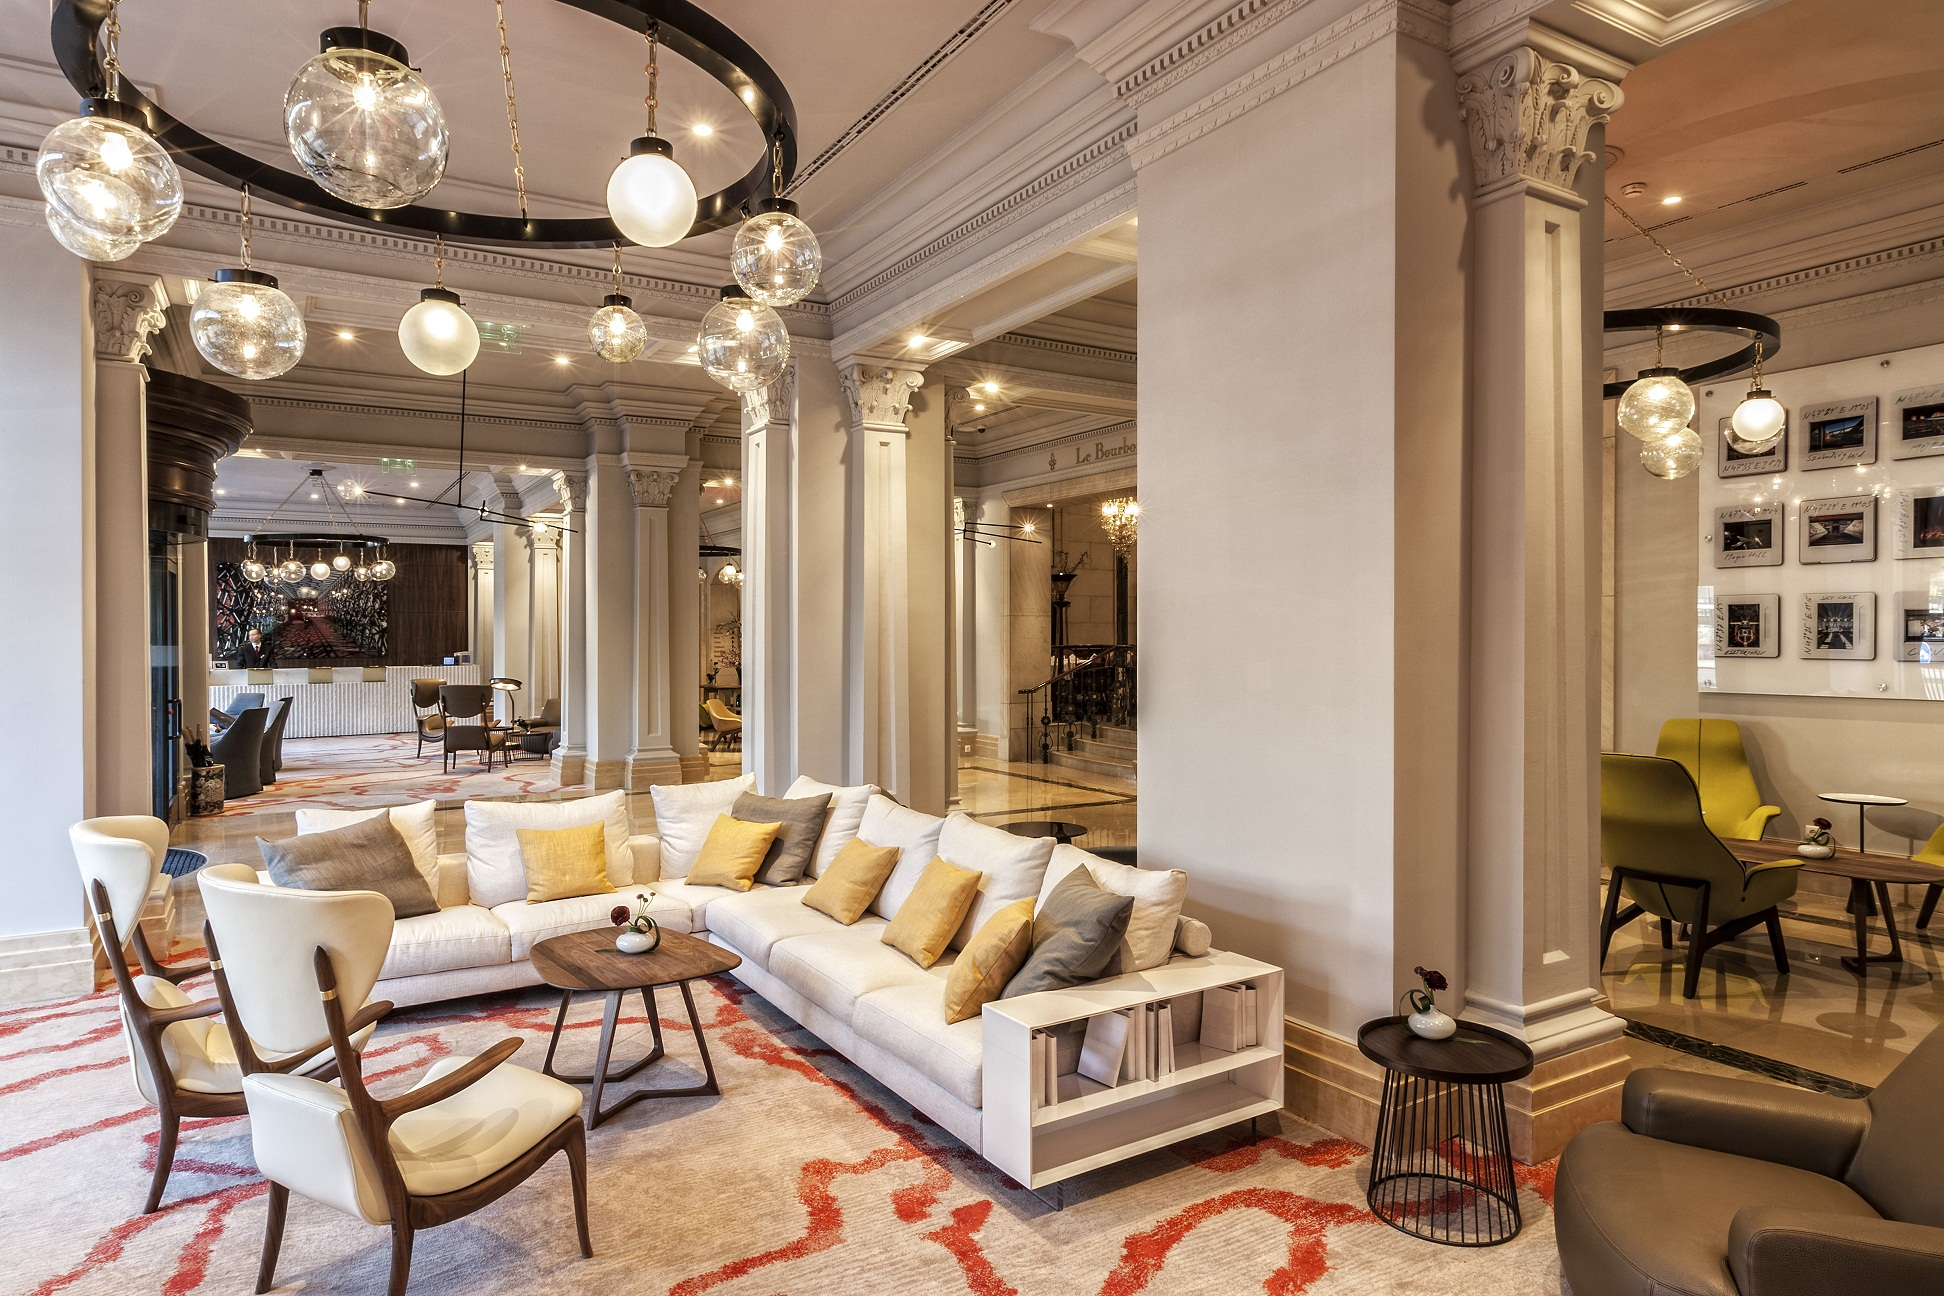 The ritz carlton hotel company to open doors in budapest for Luxury hotel company